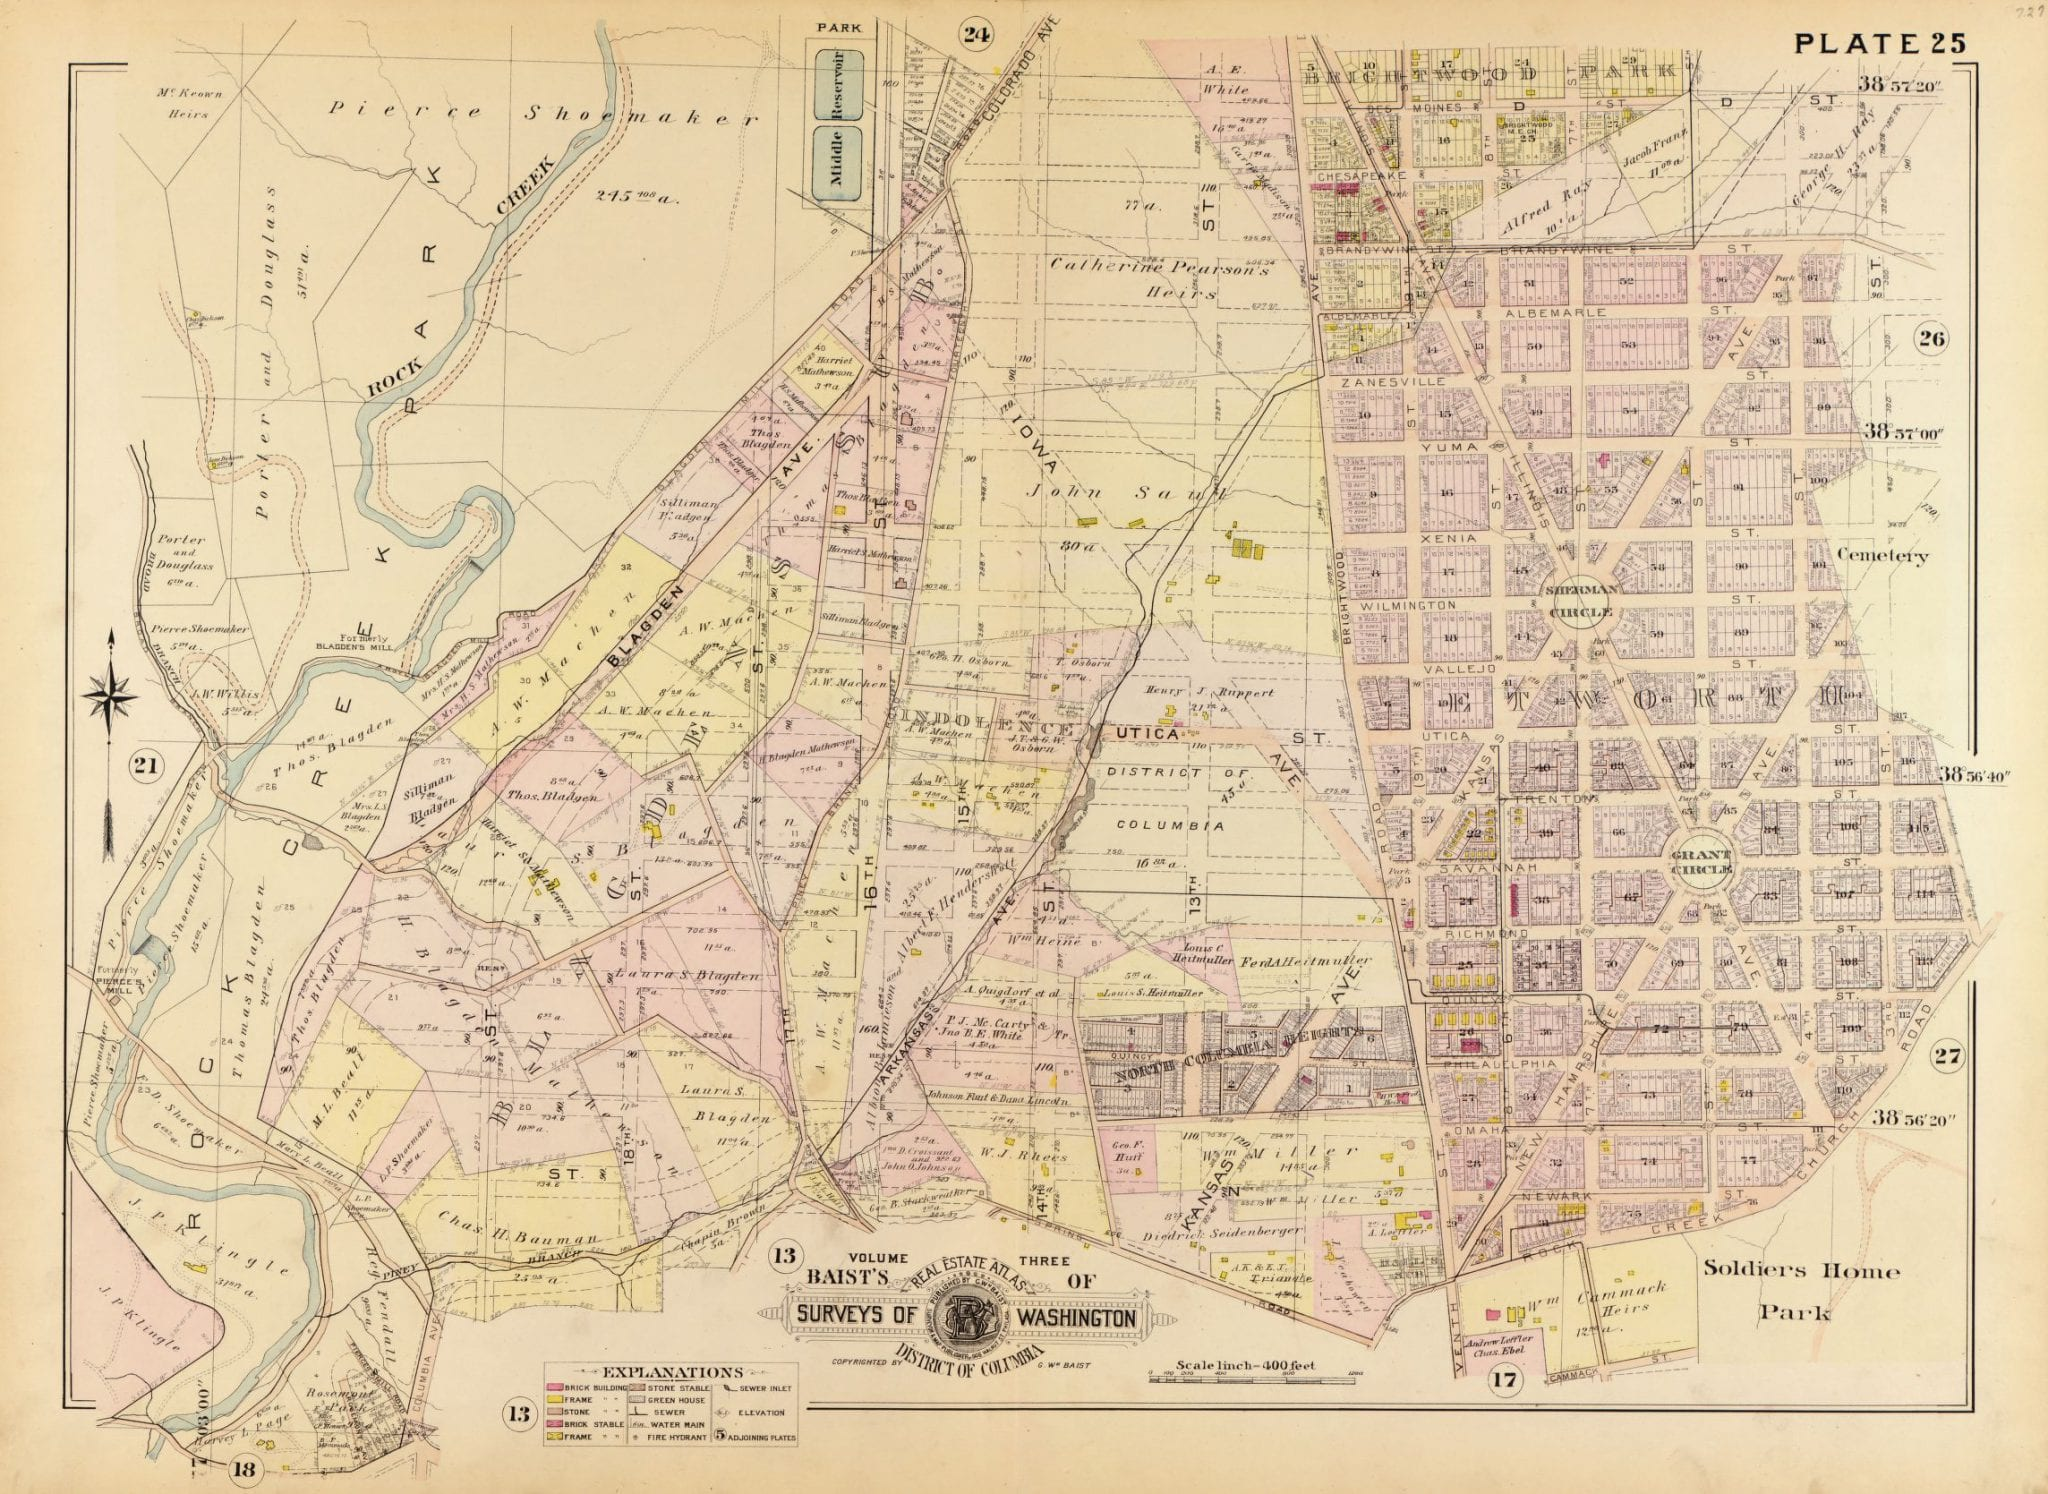 1903 map of Petworth